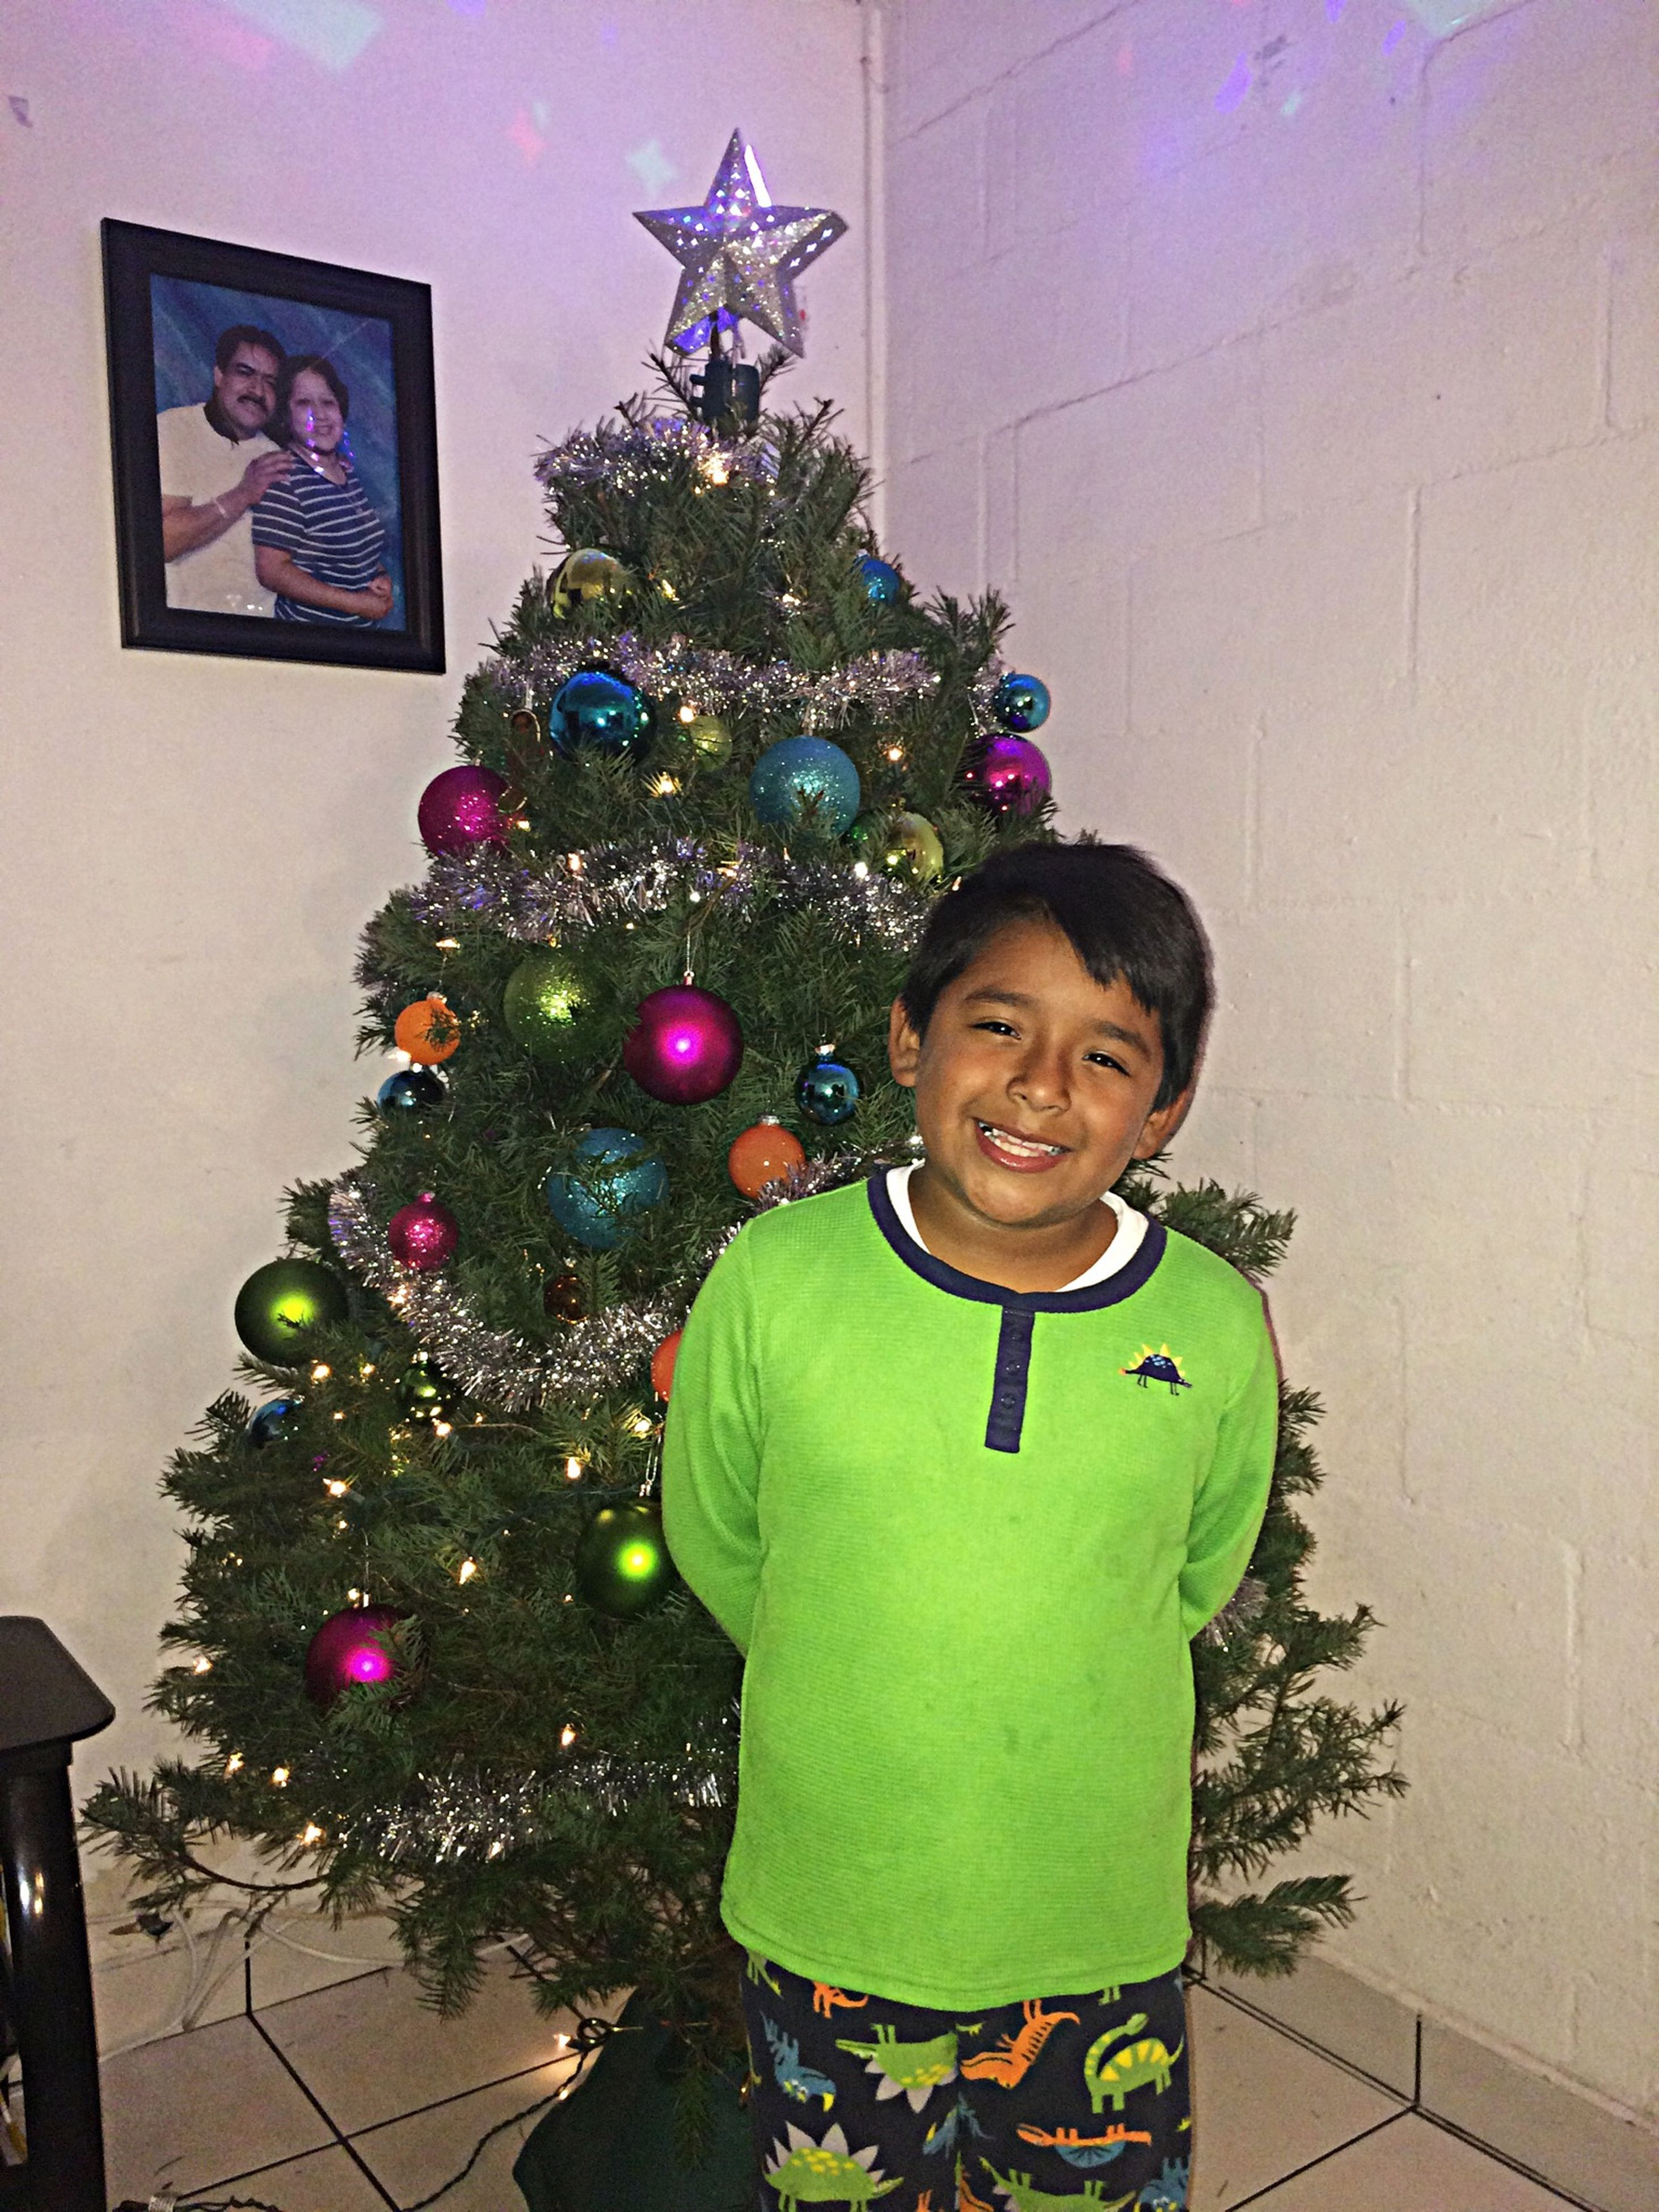 portrait, looking at camera, childhood, indoors, front view, elementary age, lifestyles, celebration, leisure activity, person, smiling, standing, wall - building feature, decoration, happiness, boys, casual clothing, multi colored